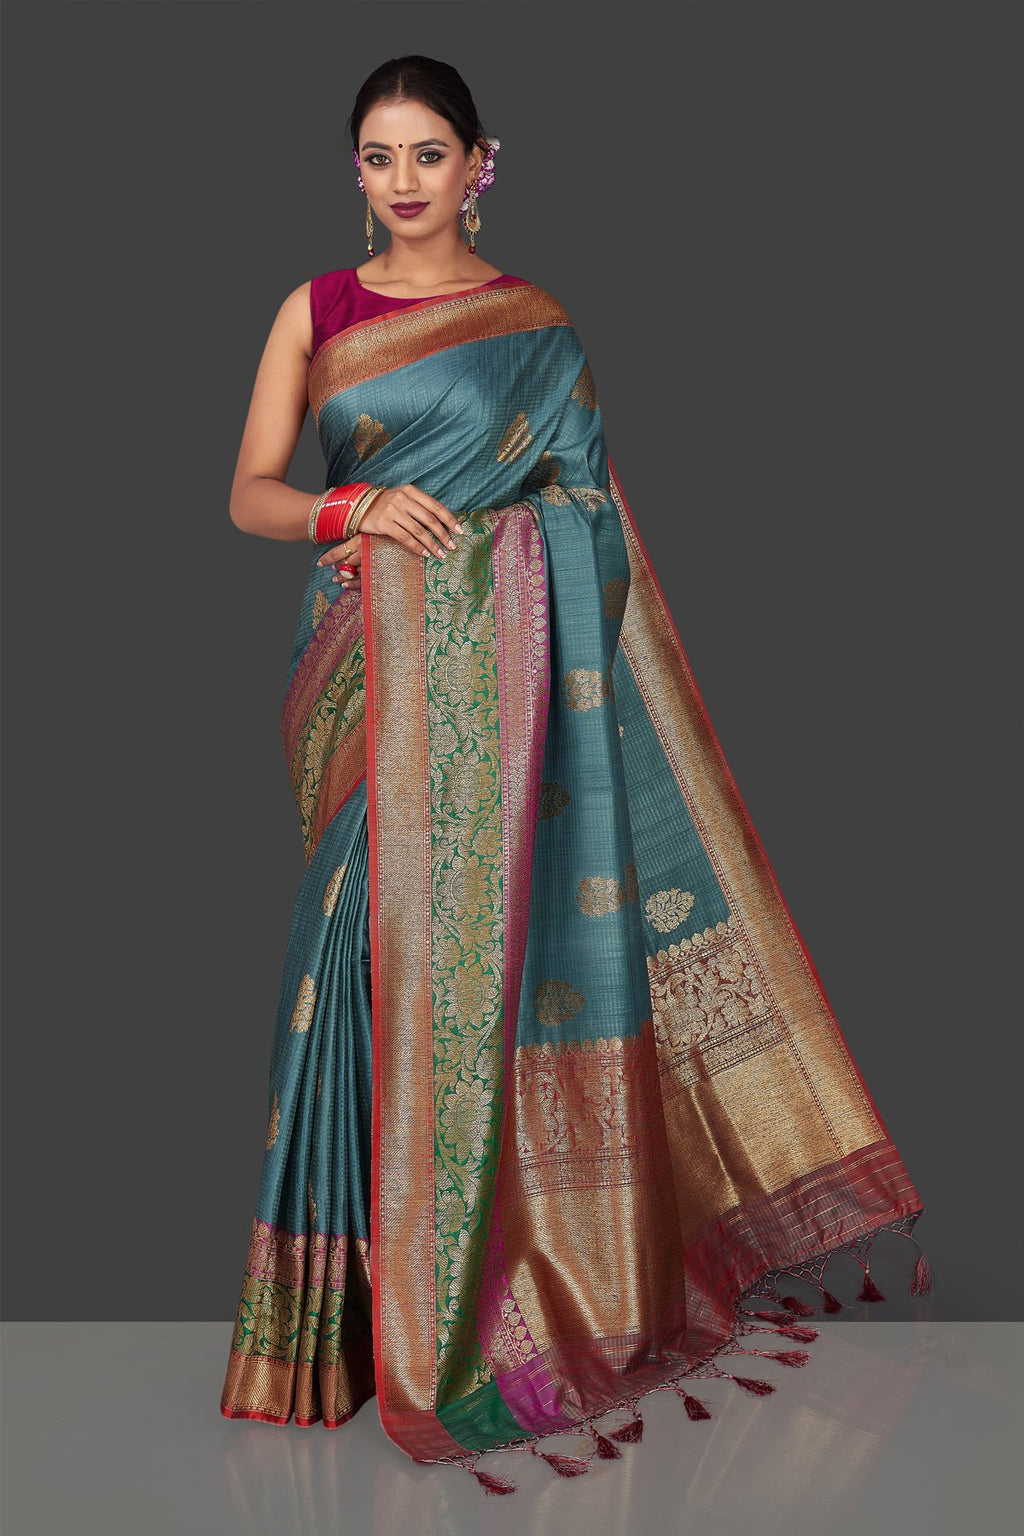 Buy gorgeous steel blue tassar Banarasi saree online in USA with antique zari border and zari buta. Garner compliments on weddings and special occasions with exquisite Banarasi sarees, handwoven silk sarees, tussar sarees from Pure Elegance Indian fashion store in USA.-full view